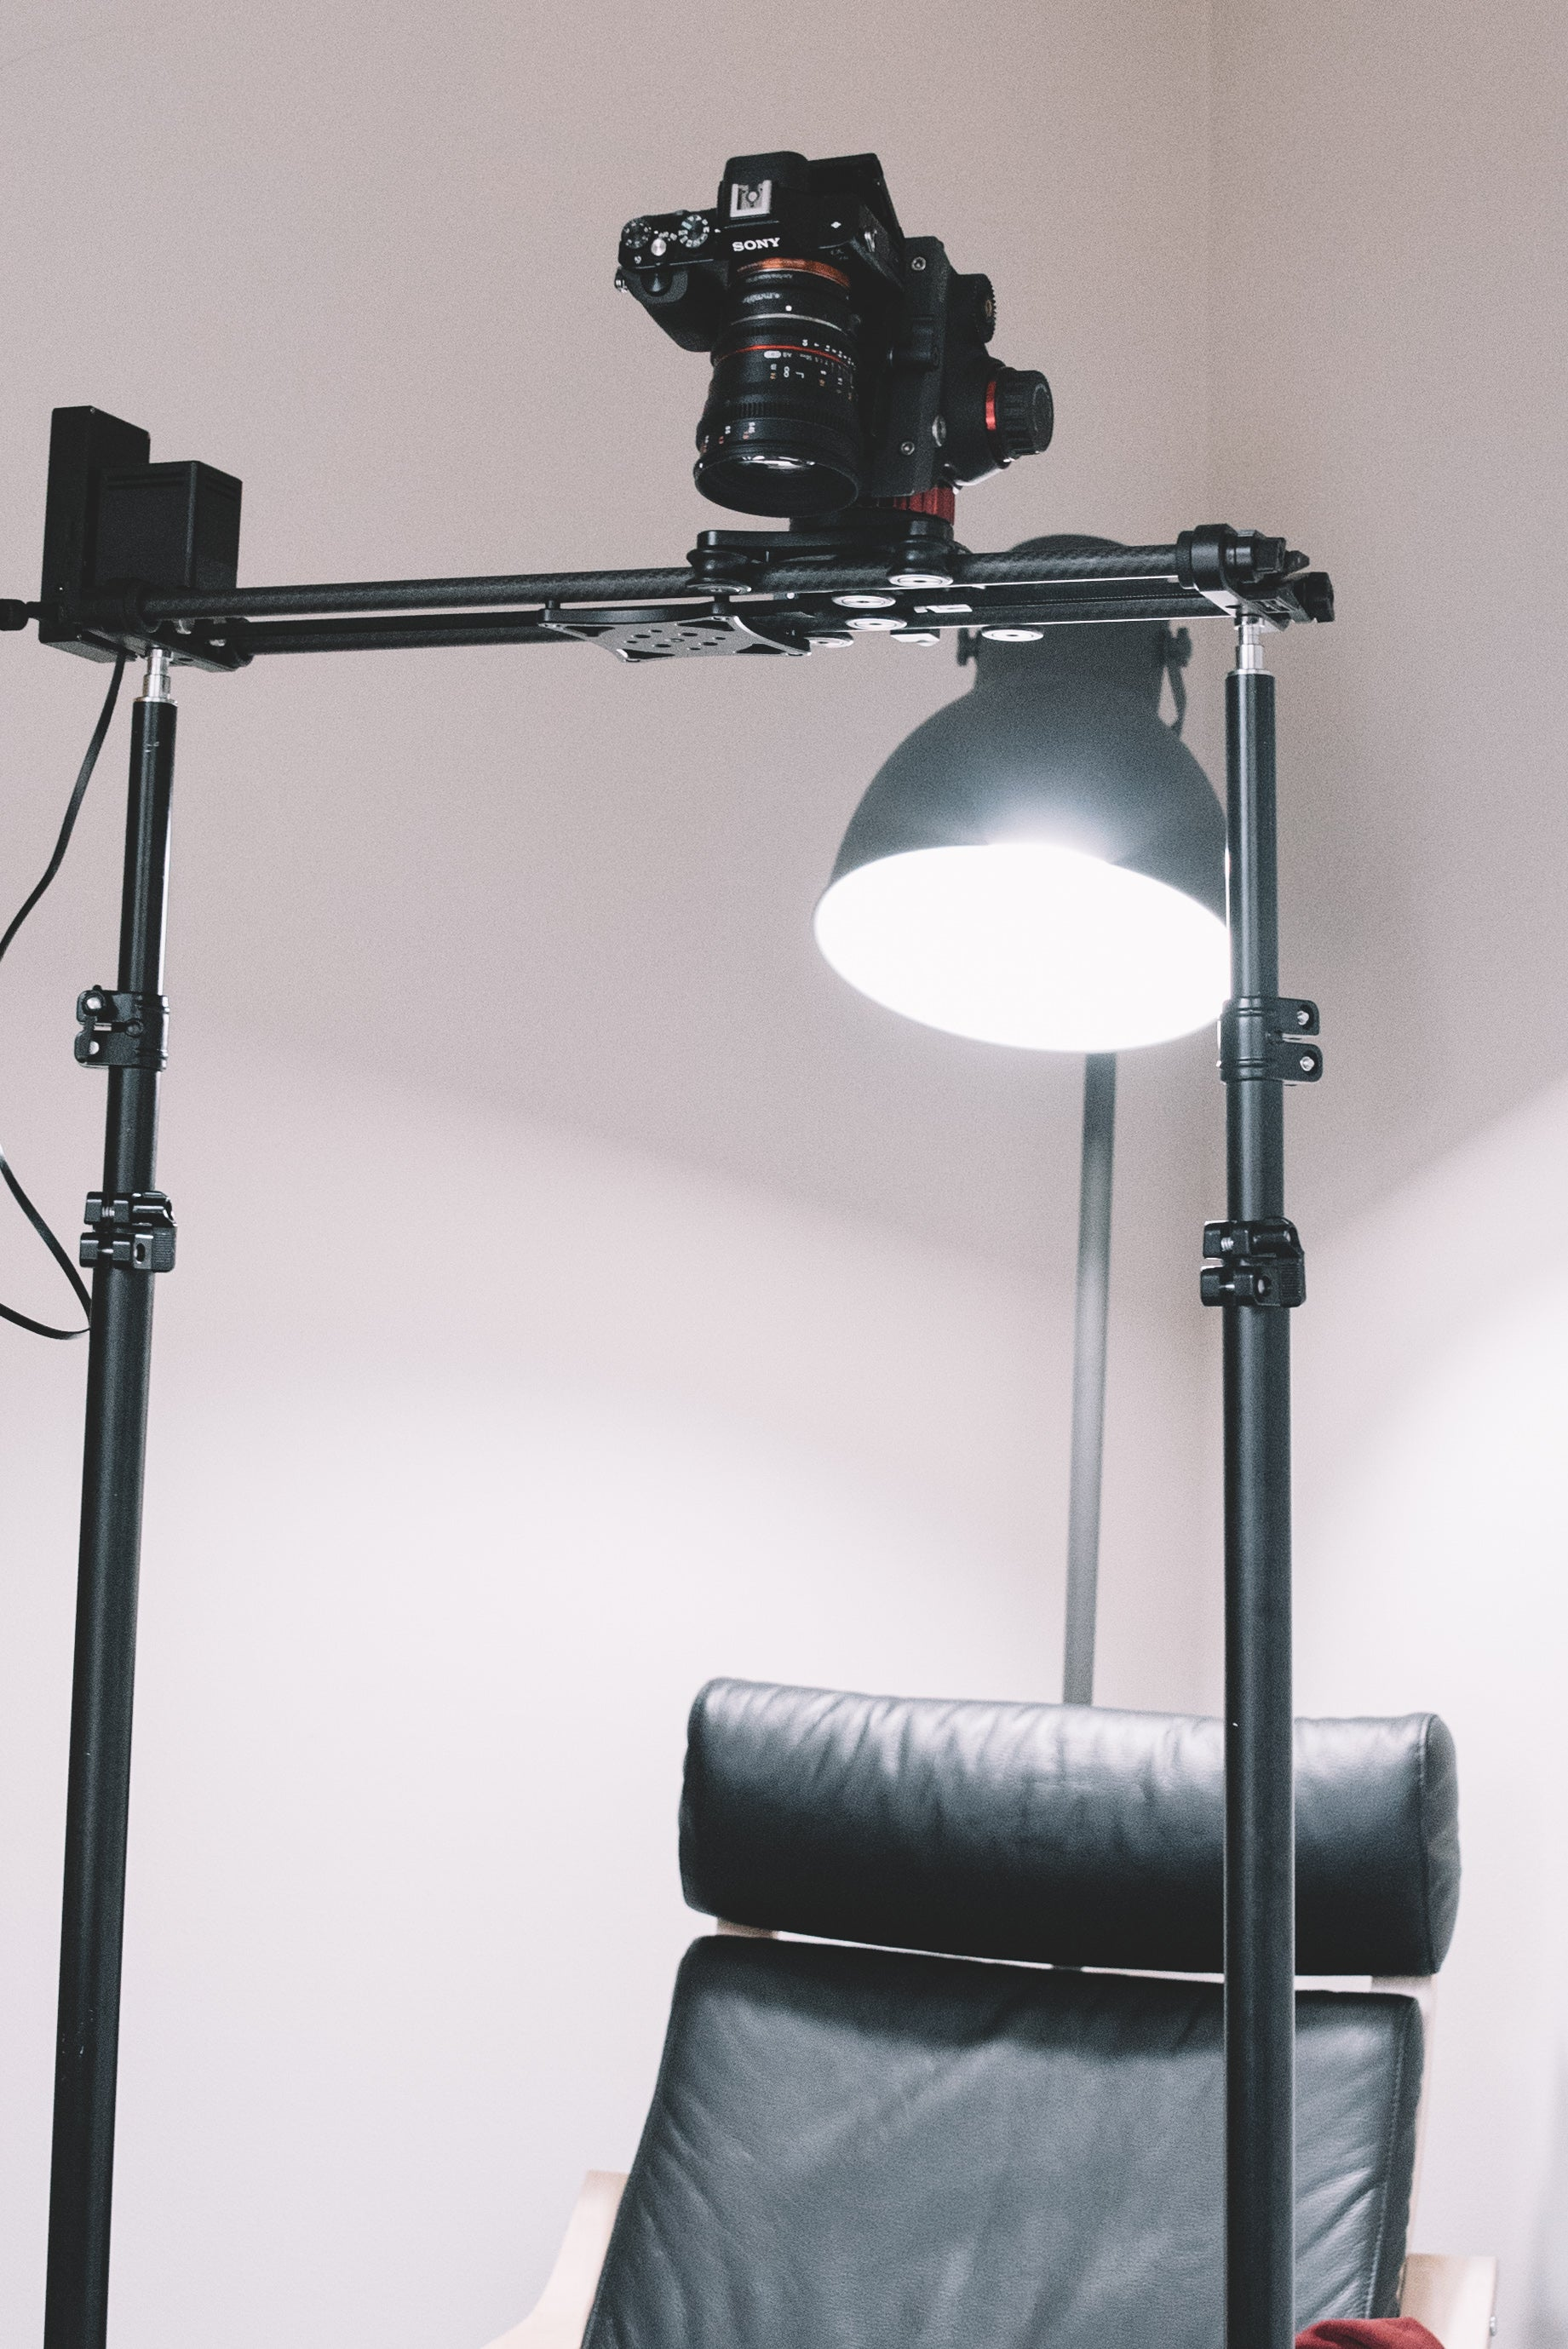 Rhino Camera Gear Light stands